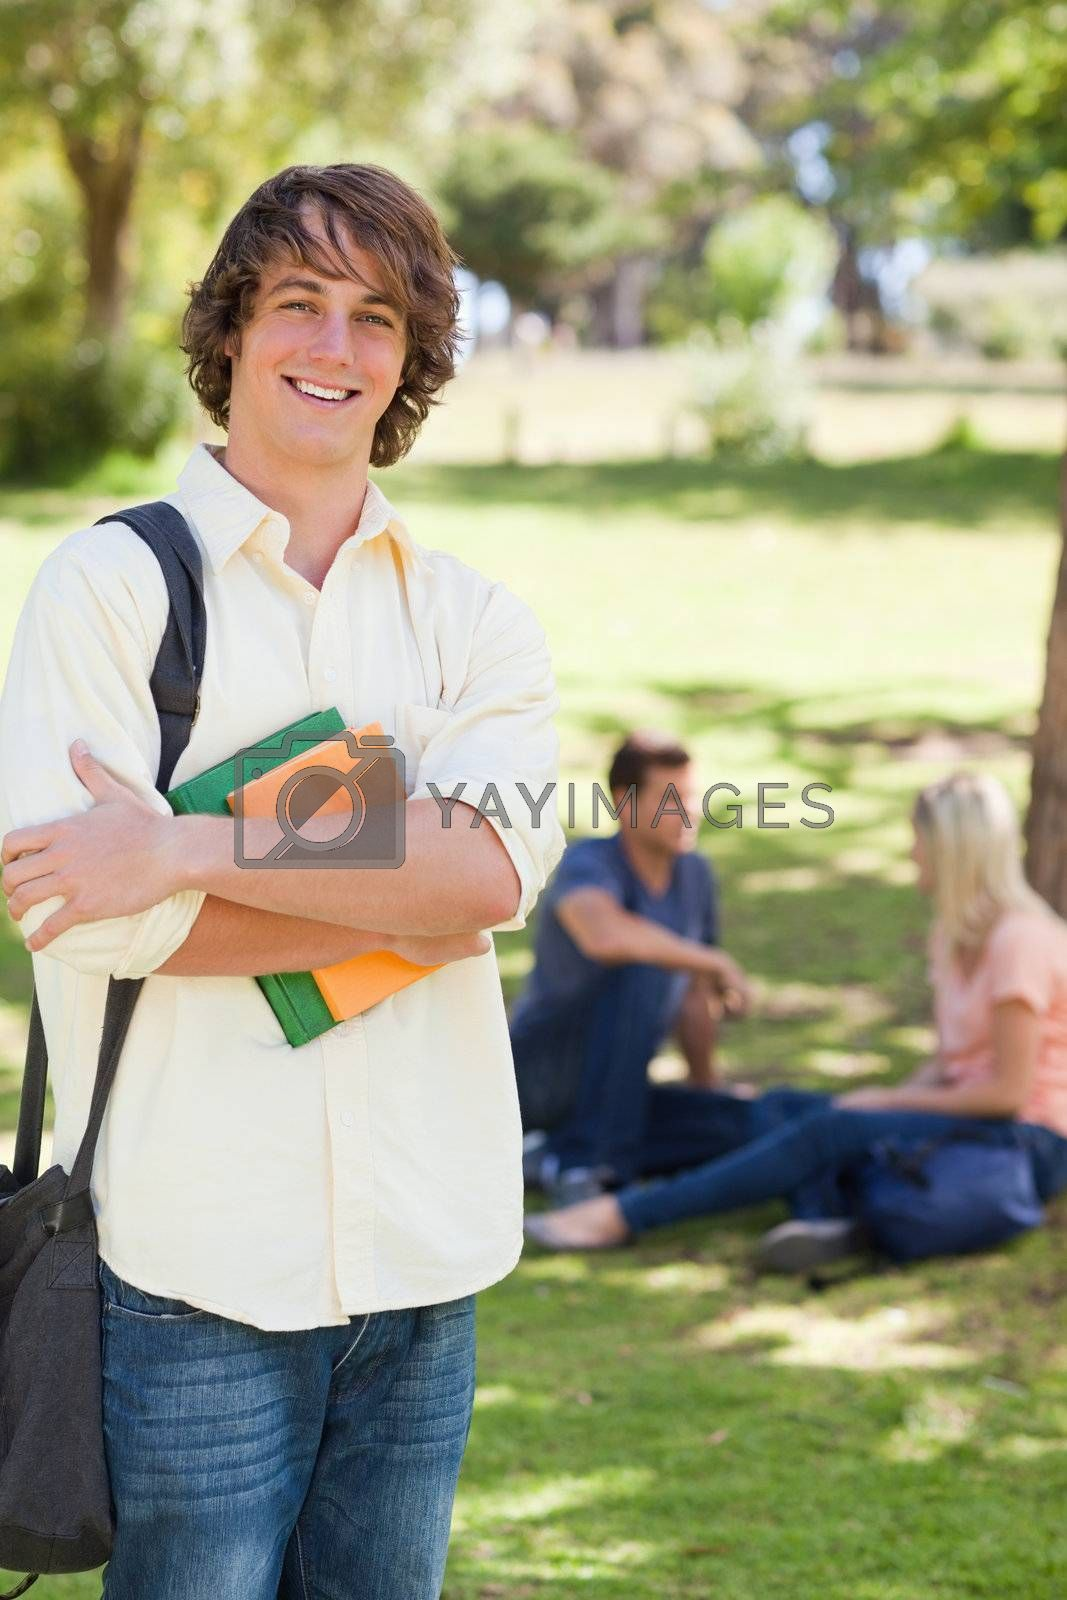 Smiling young man posing with textbook in a park with friends in background